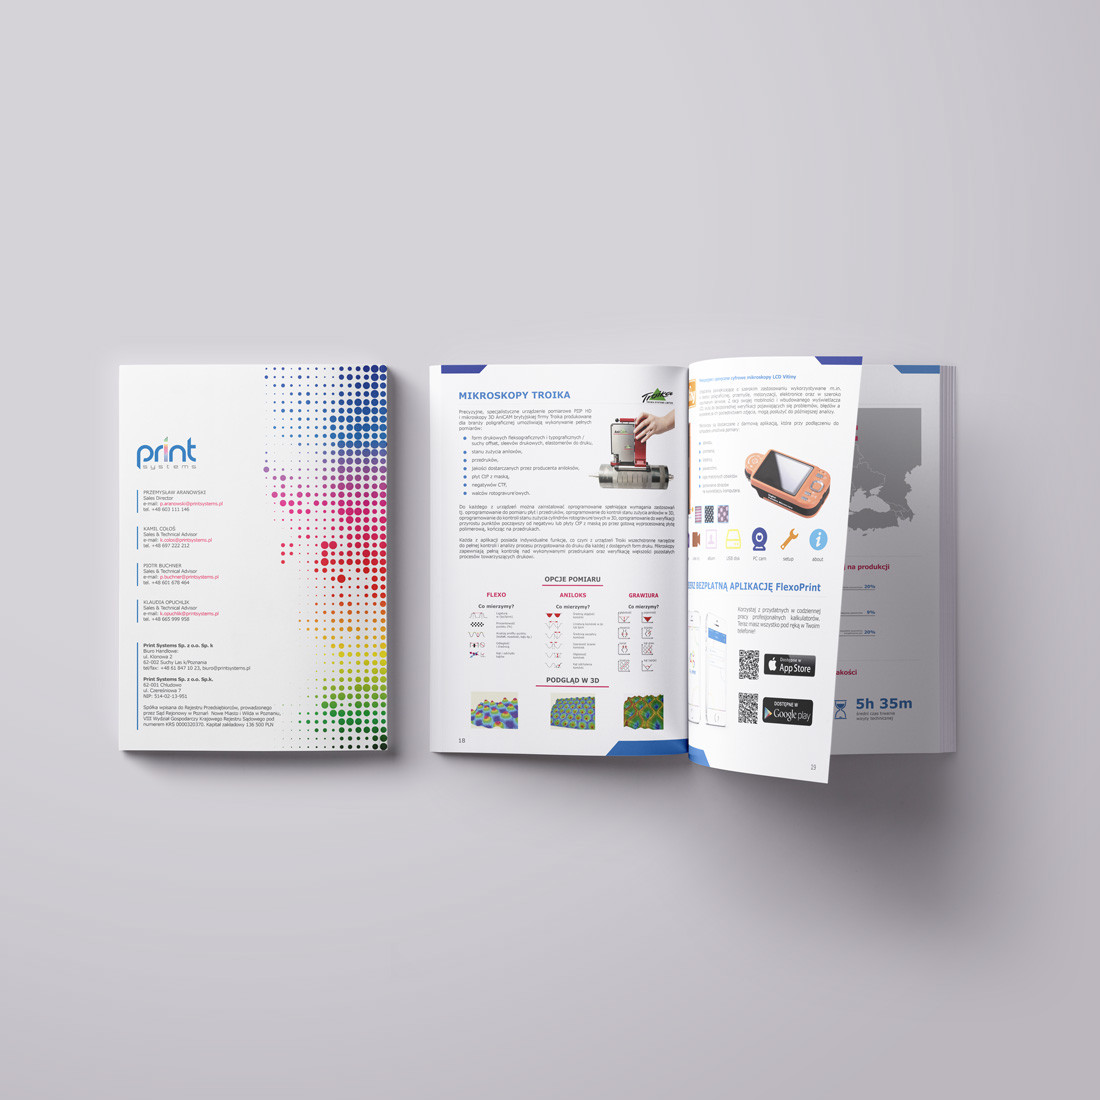 Print Systems